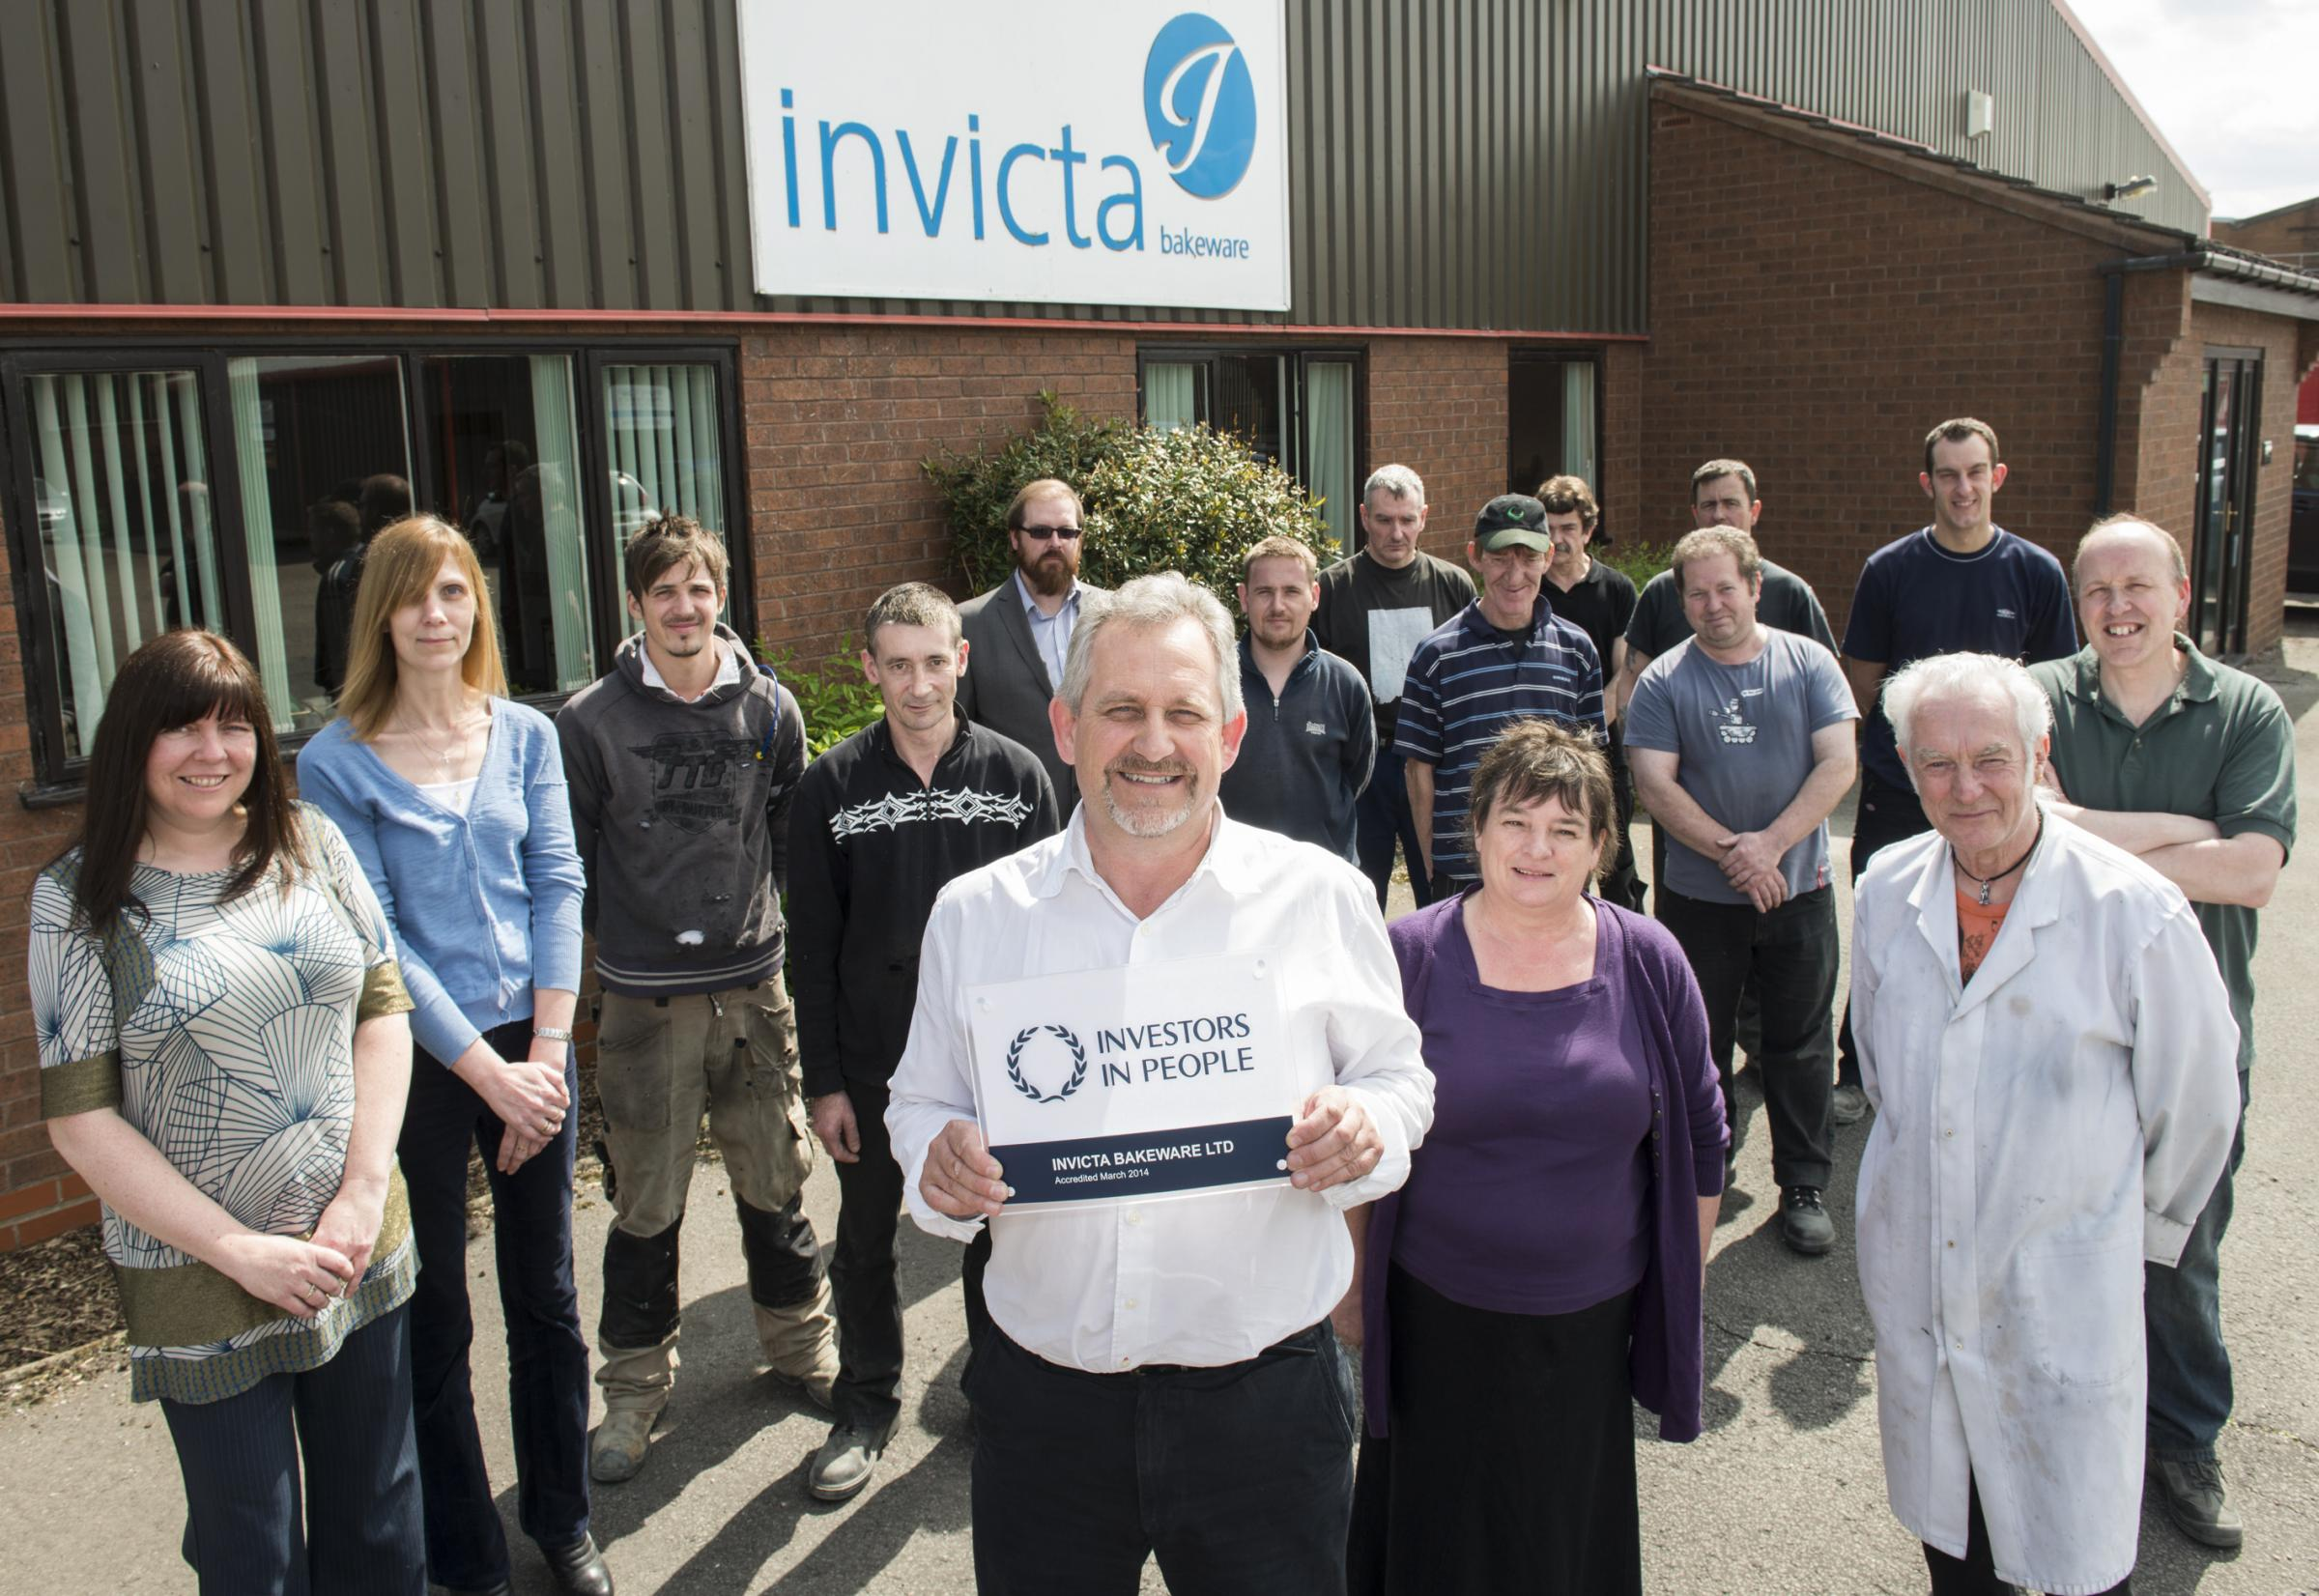 Smiles all round for staff at Invicta Bakeware. J